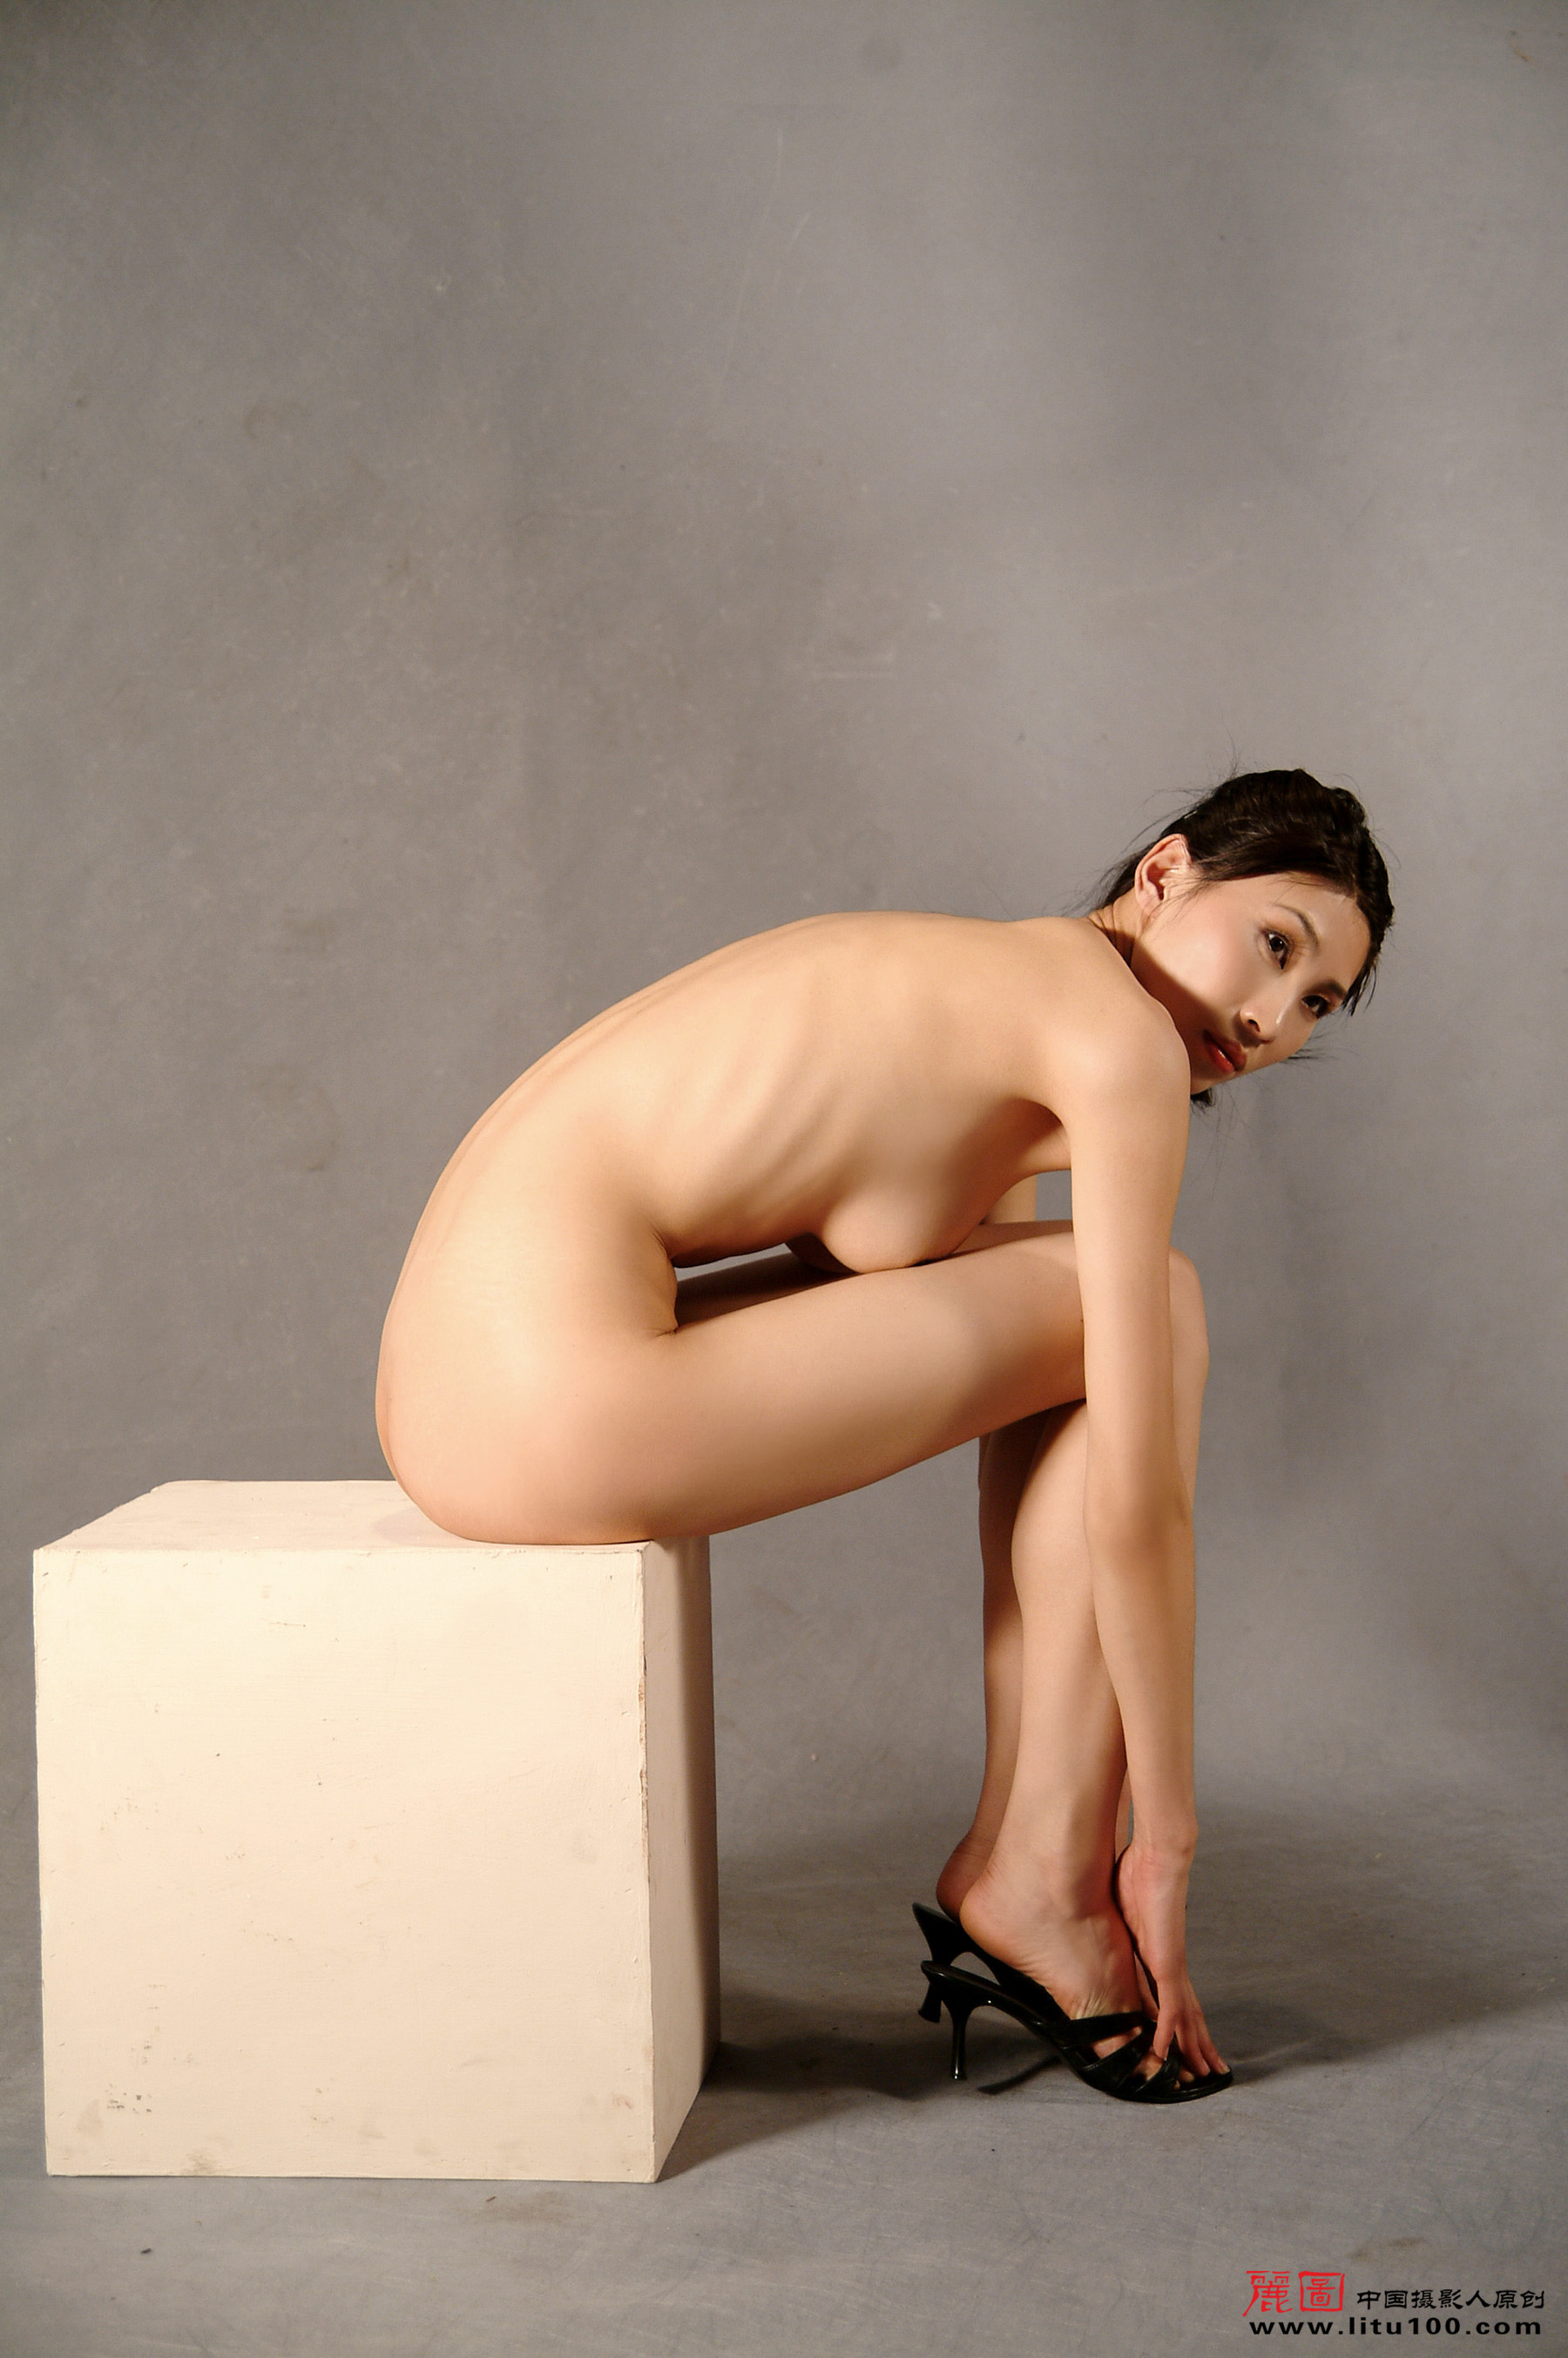 nude artist model photos